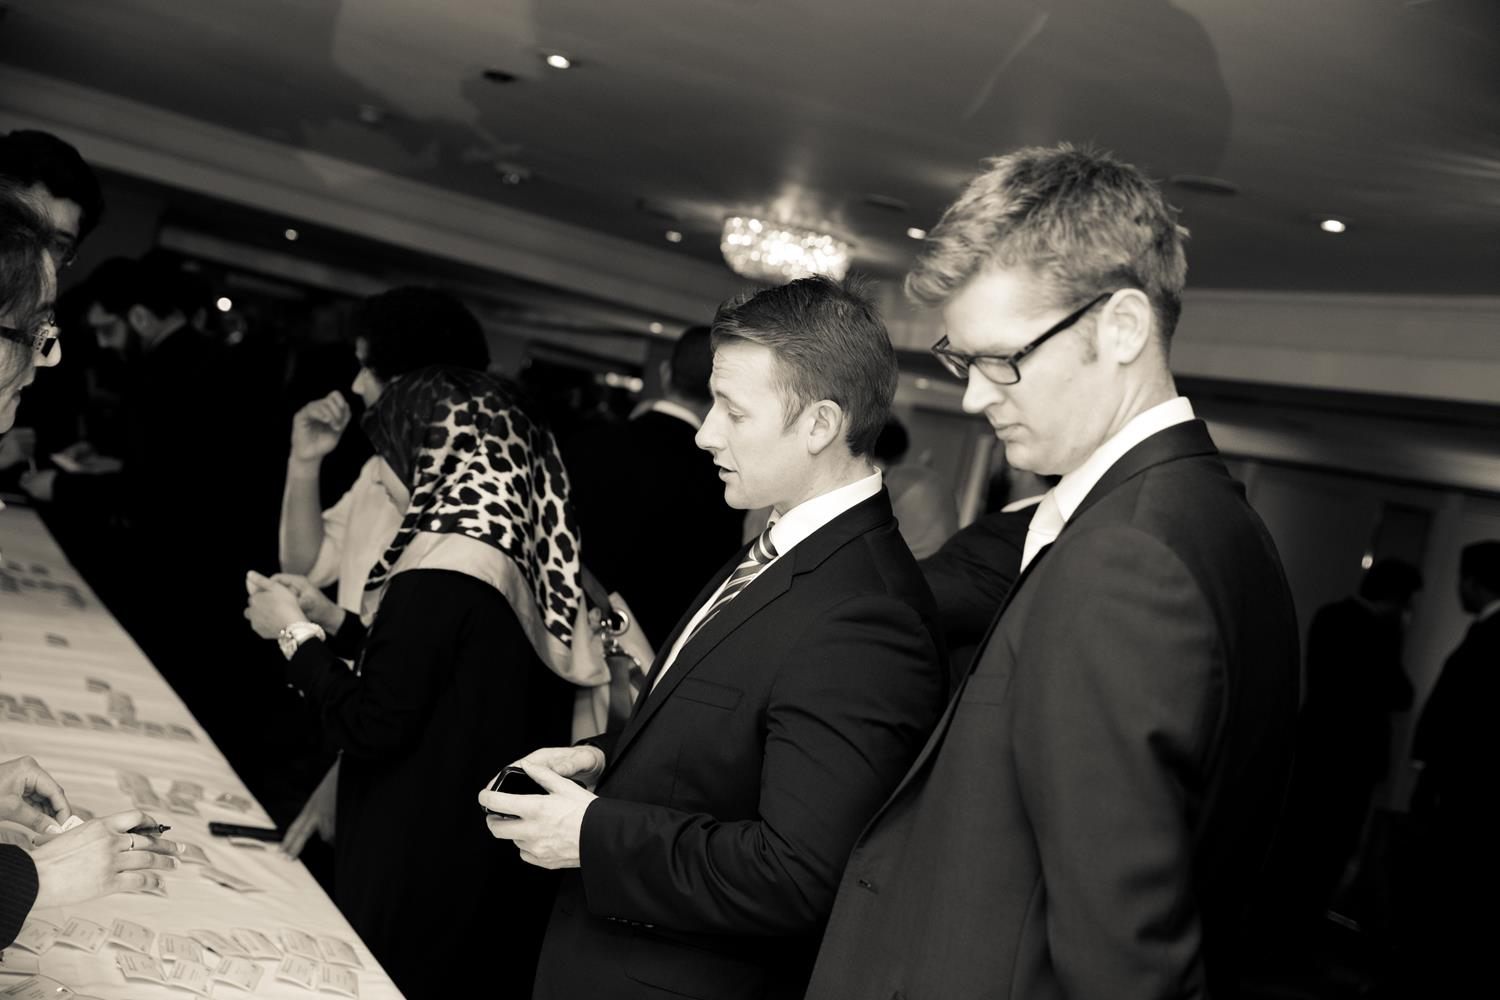 Corporate Photography of a two people in Black and White by MAKSAM London Photographer